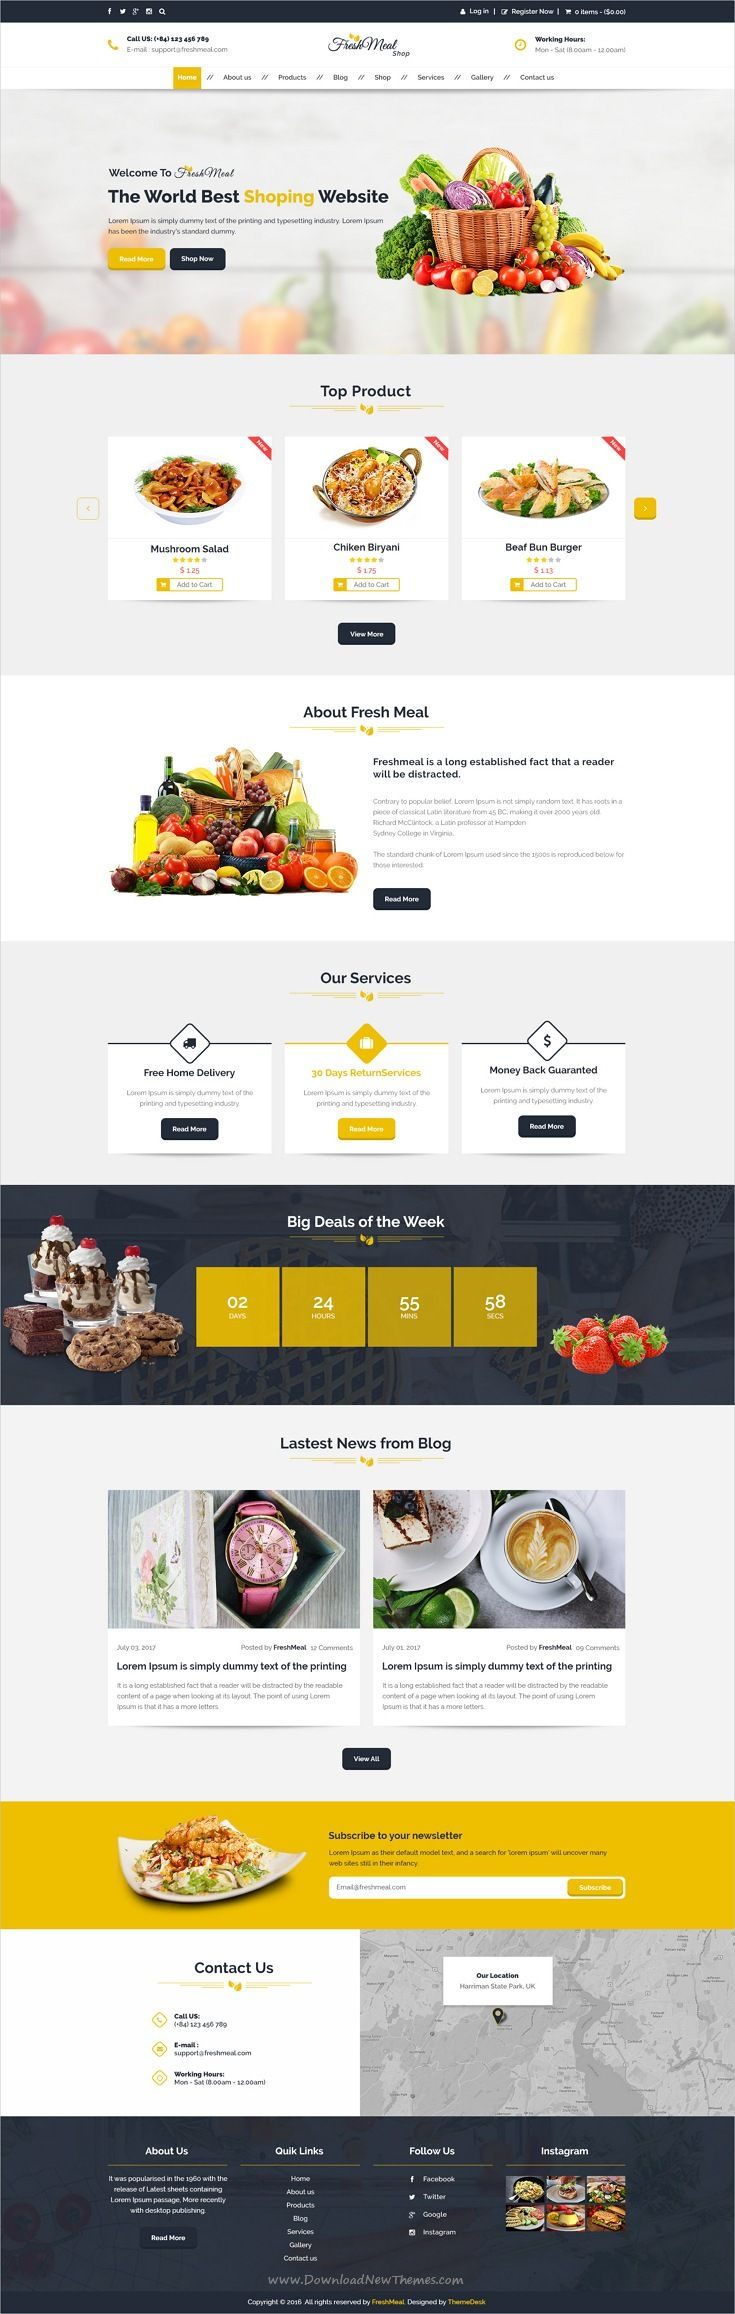 D health food store in l a - Freshmeal Organic Foods Store Psd Template